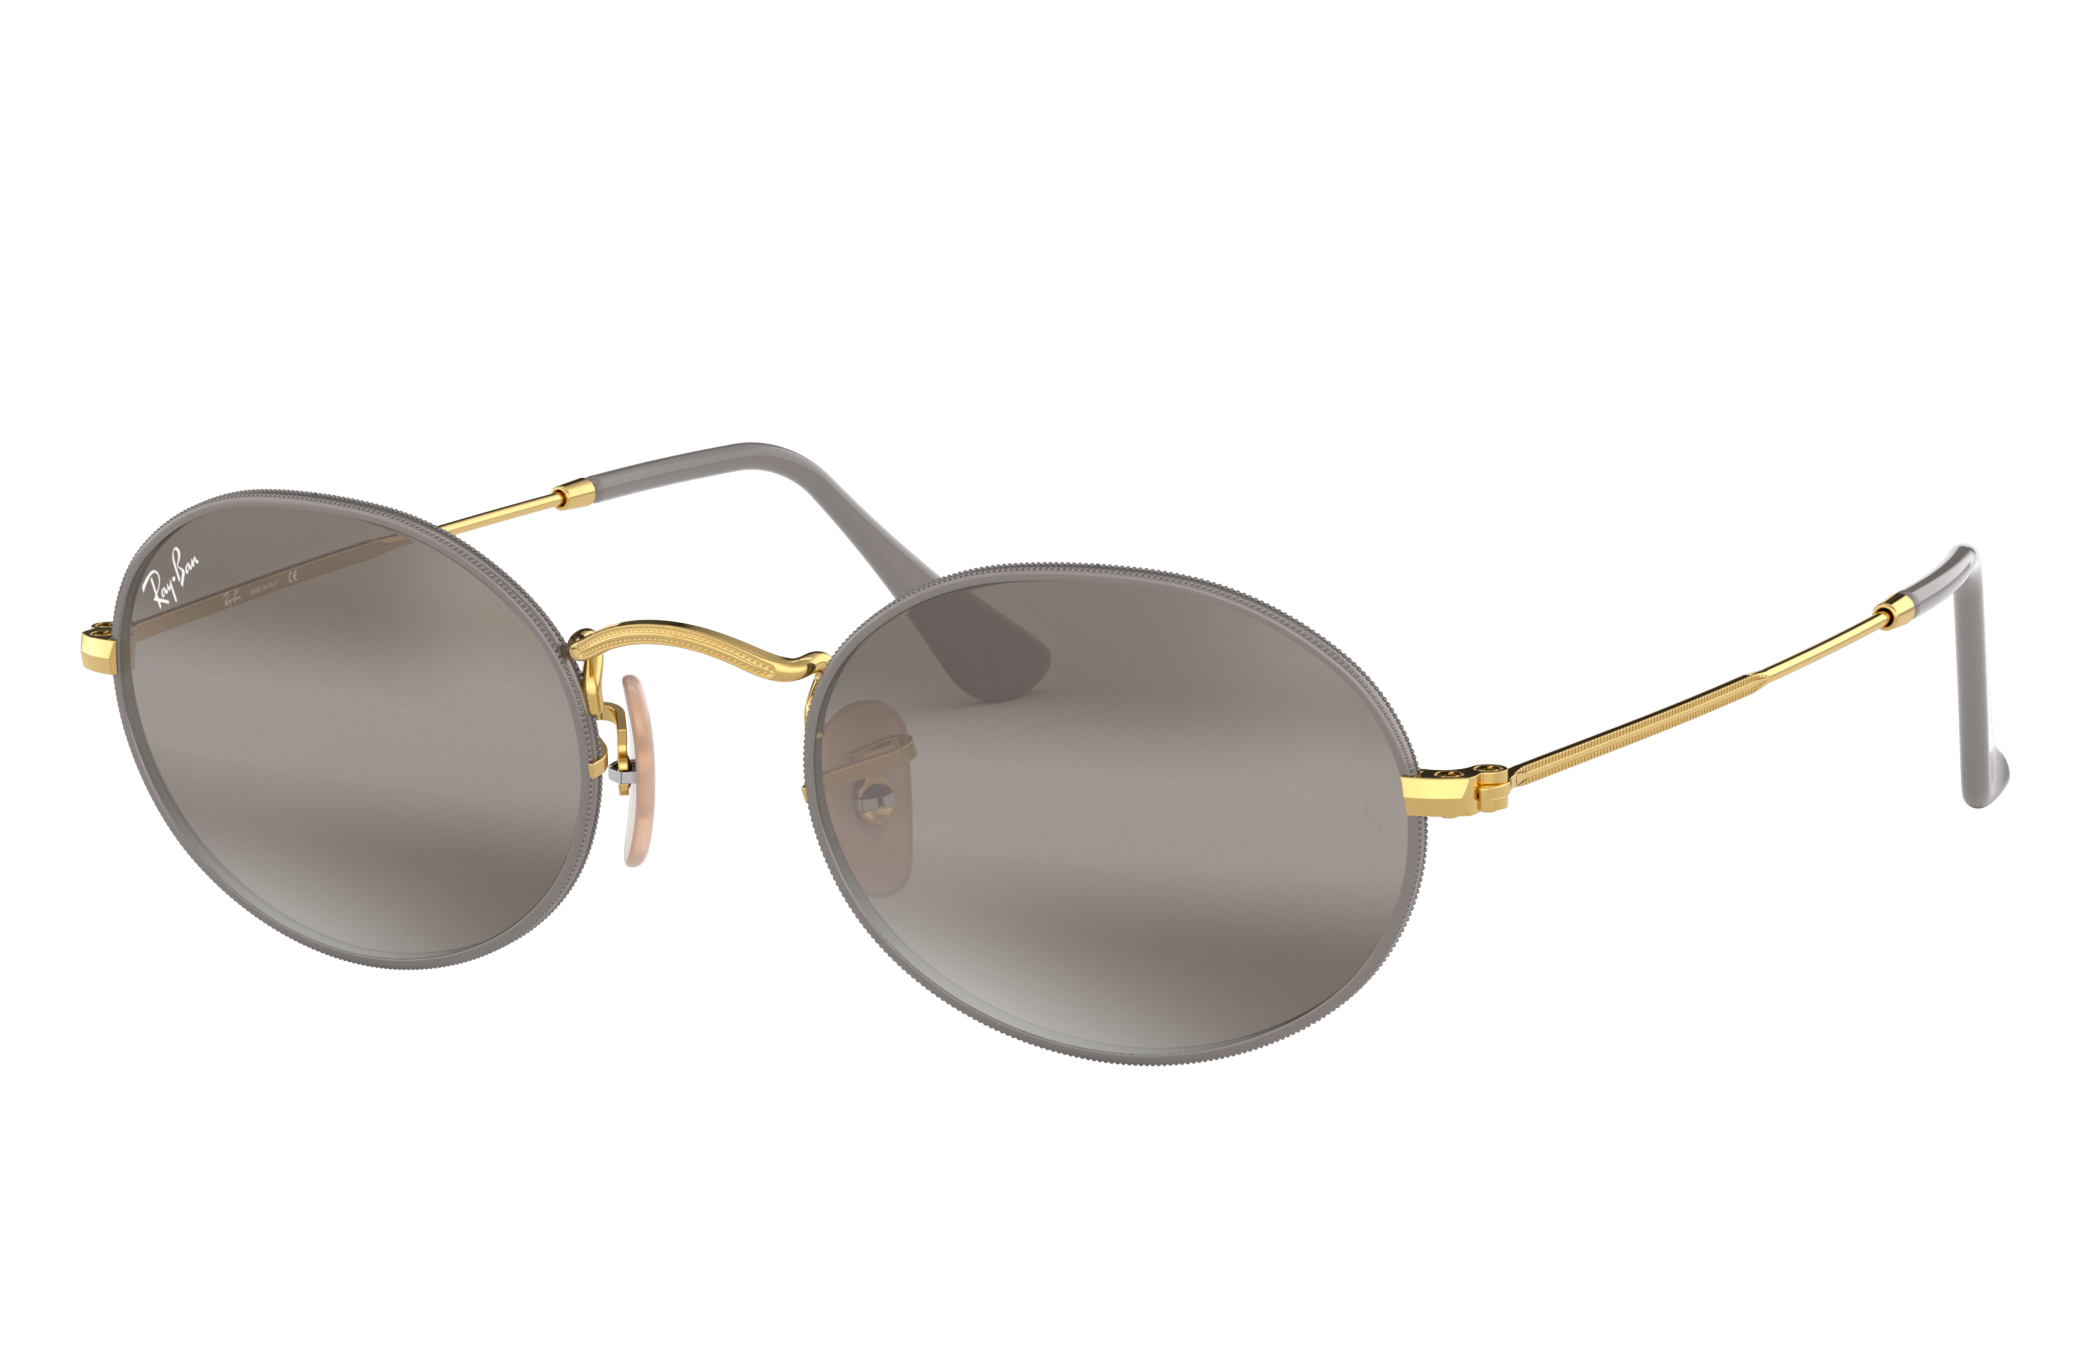 Ray-Ban Oval Gold, Grey Lenses - RB3547